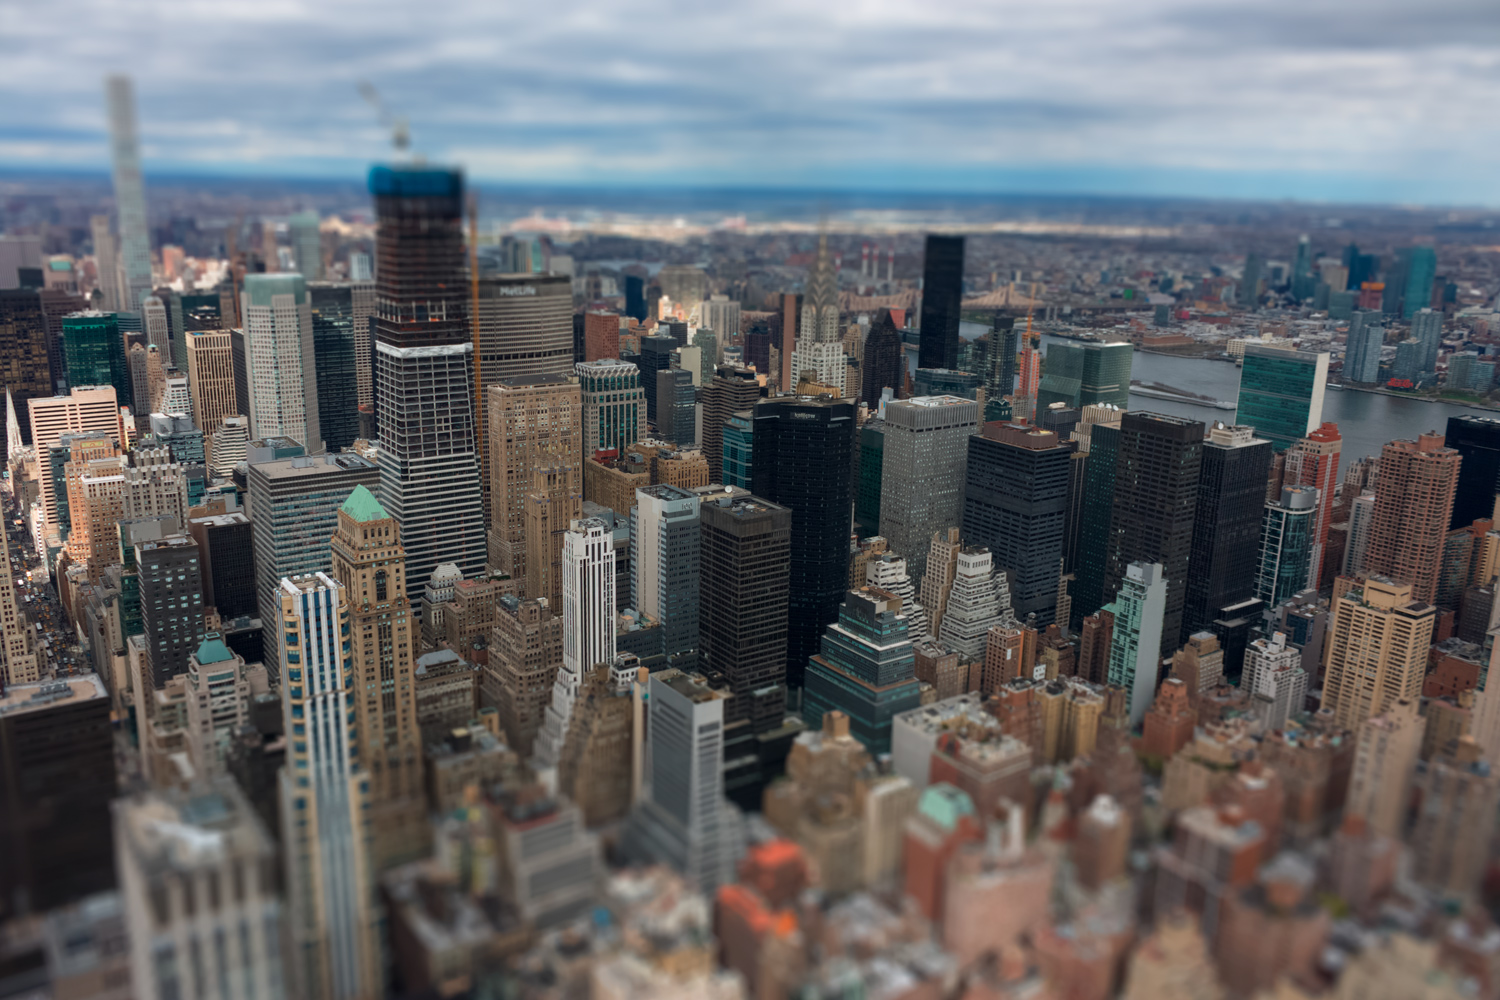 tilt-shift photo effect